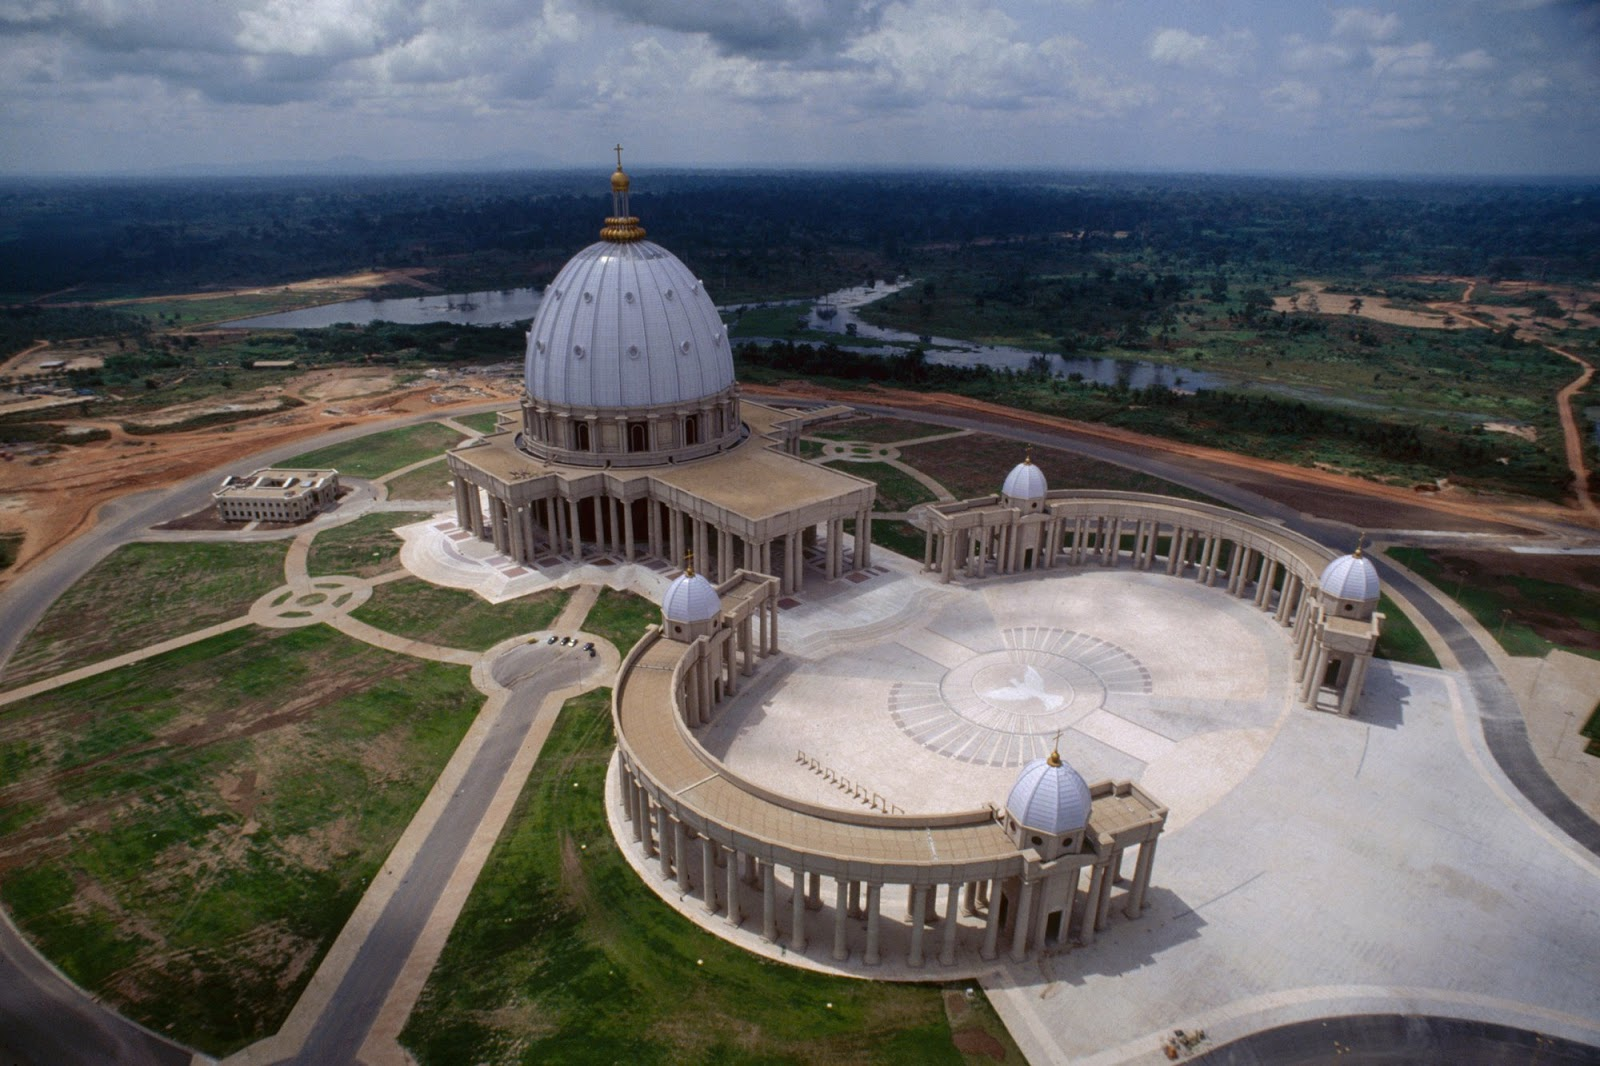 Basilica of our lady of peace,IVORY COAST